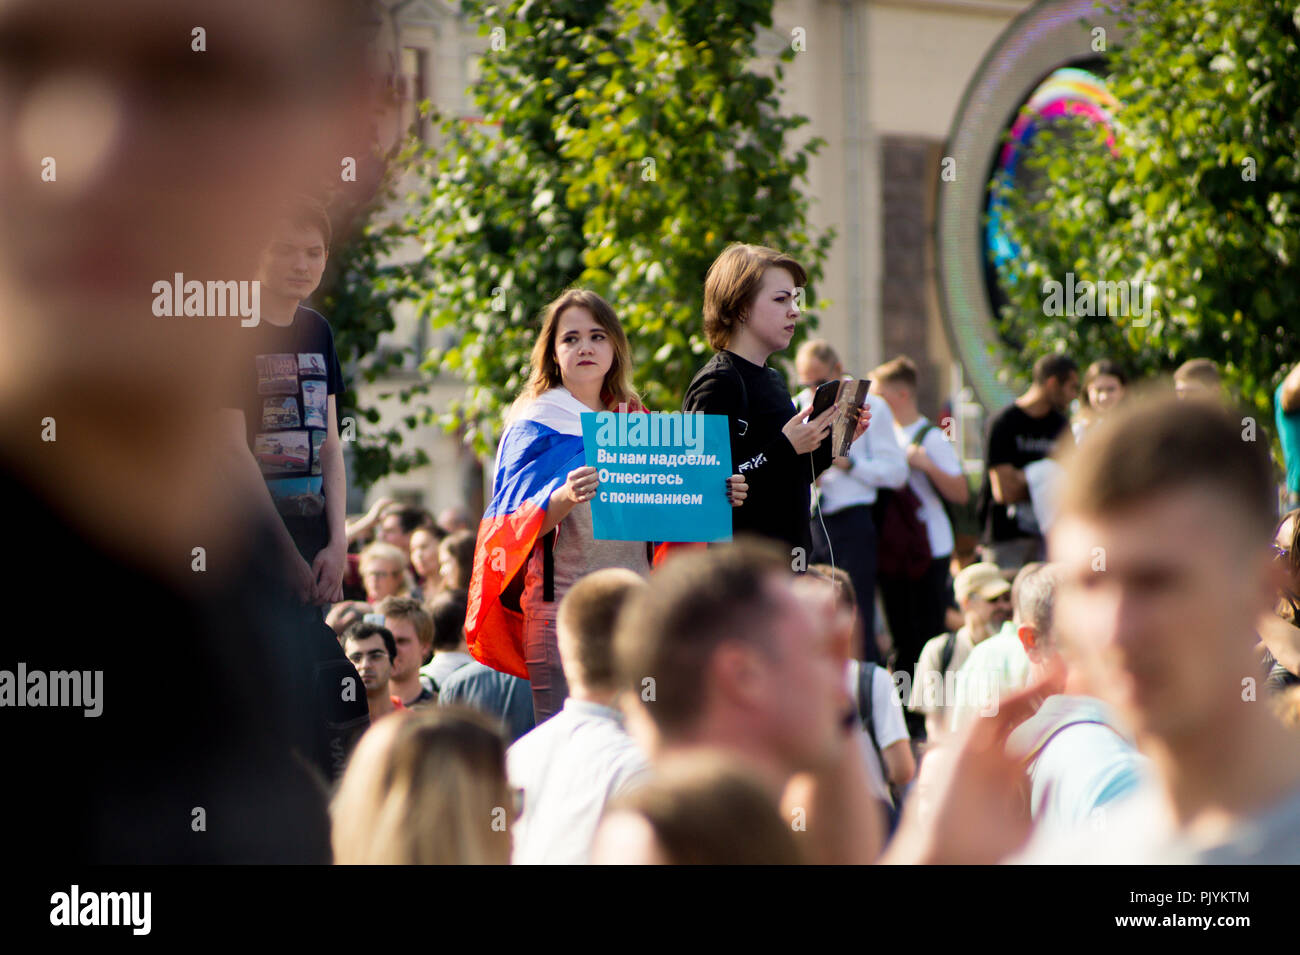 Moscow, Russia. 9th Sept 2018. A young woman is holding a sign saying 'We Are Tired of You. Show Some Understanding.' during an anti-government rally in Moscow where Russian opposition activists gathered to express resentment about the upcoming pension refrom. Credit: Roman Chukanov/Alamy Live News - Stock Image